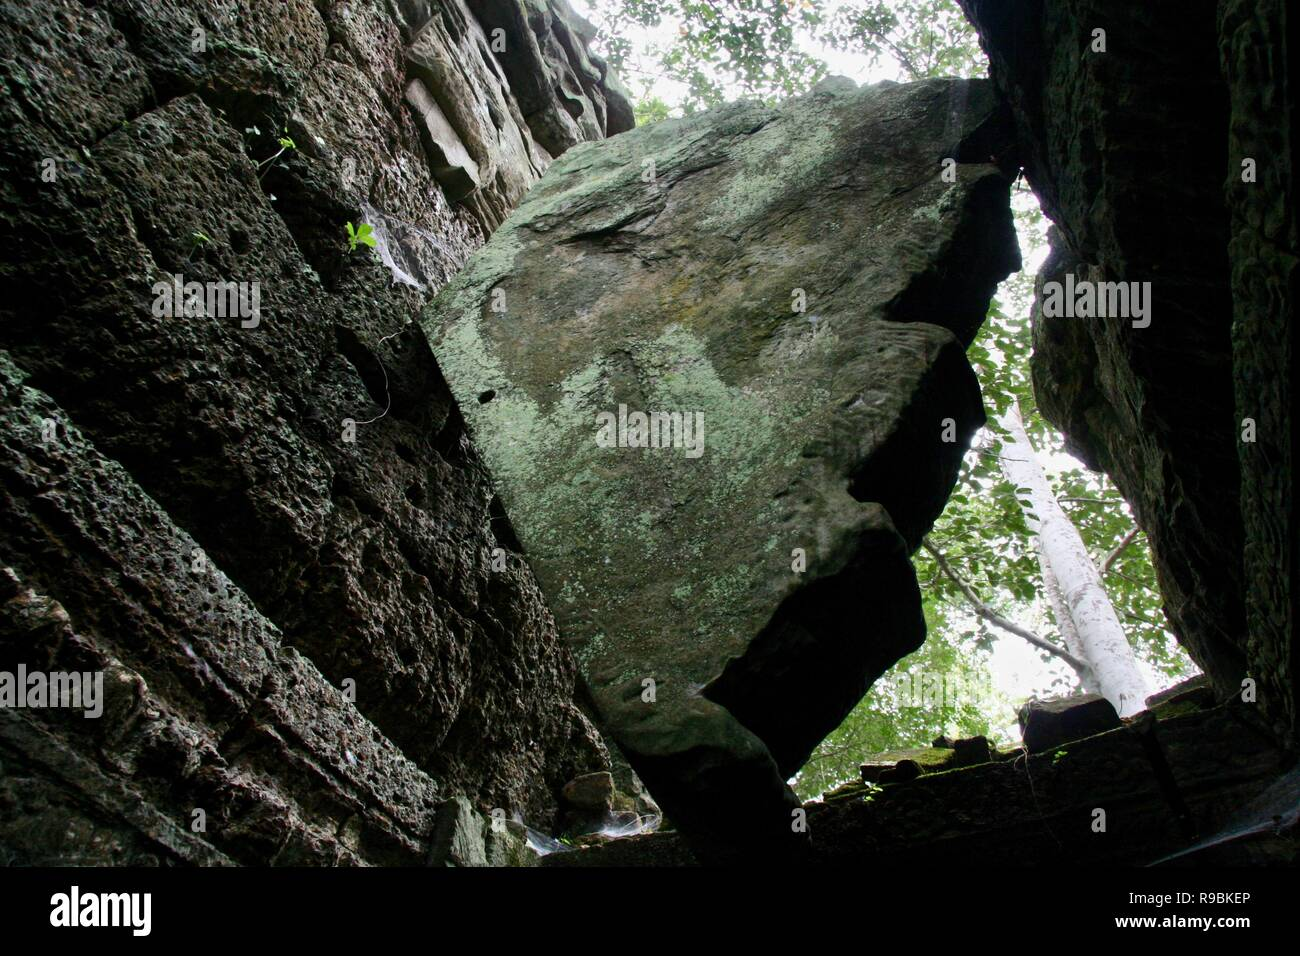 A huge rock caught and wedged between two stone walls - Stock Image